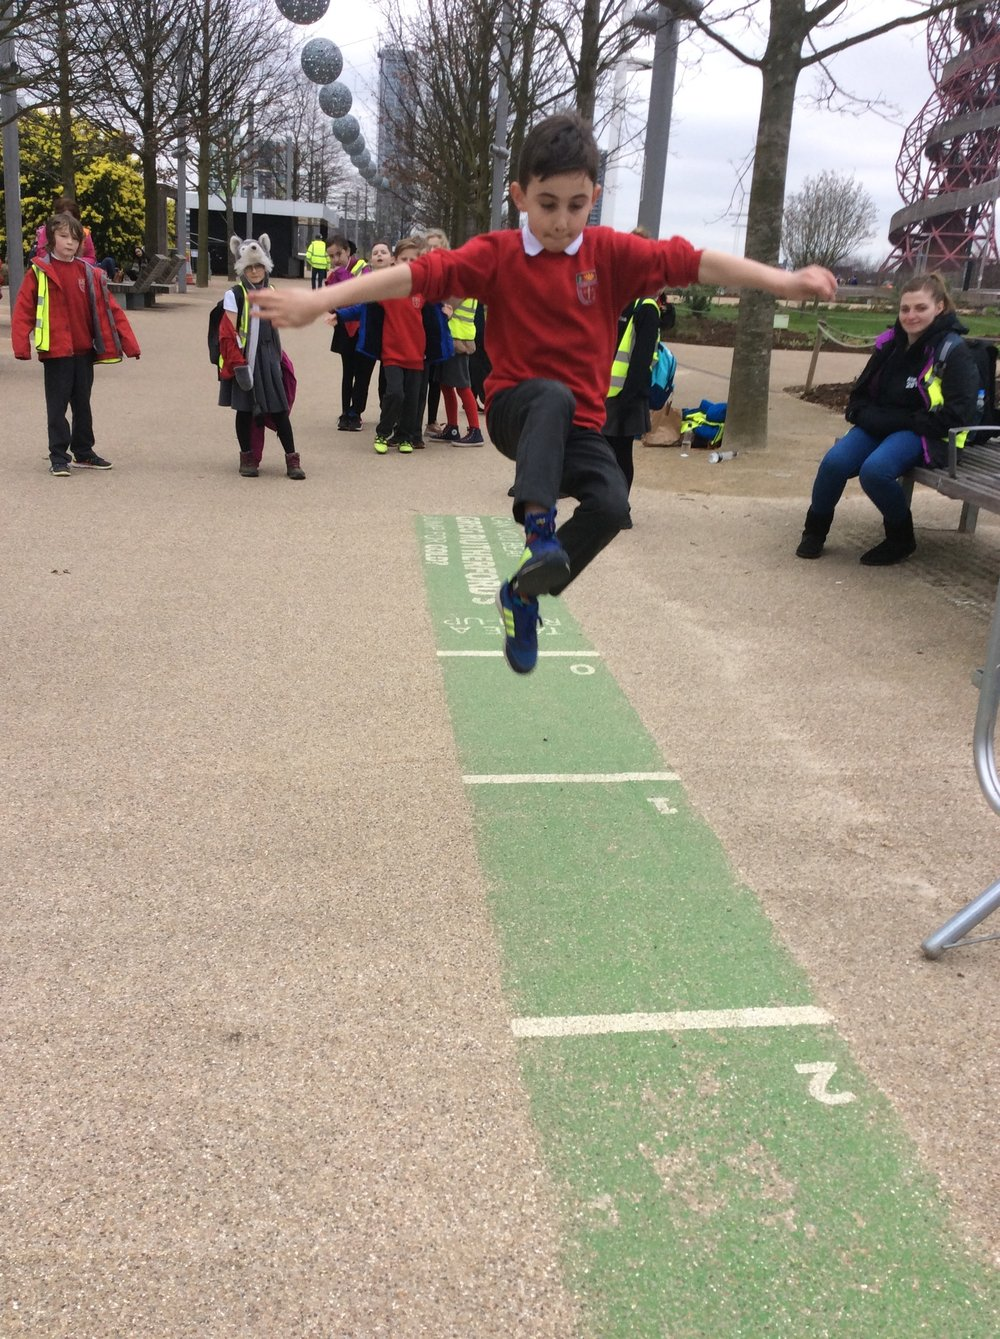 Classy technique and great height. Greg Rutherford reached more than 8m, Alfie was Parkroyal's champion with 3m.      Mrs Savage  'wooden' really want to get up